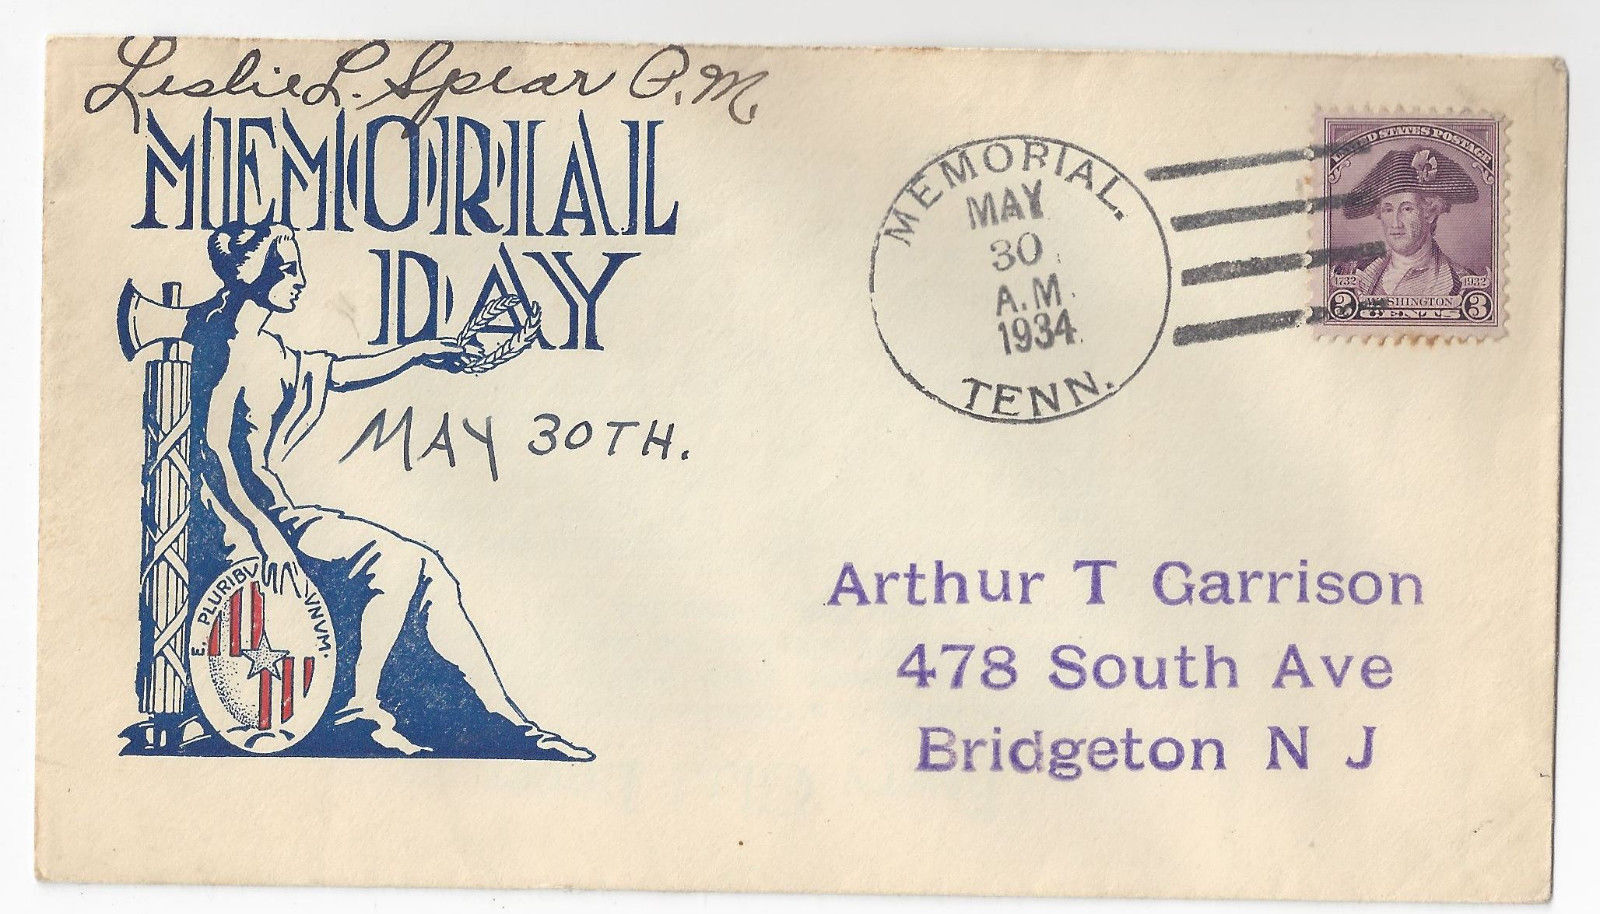 Memorial Day 1934 Cachet Cover Memorial TN Leslie Spear PM Signed 4-Bar DPO